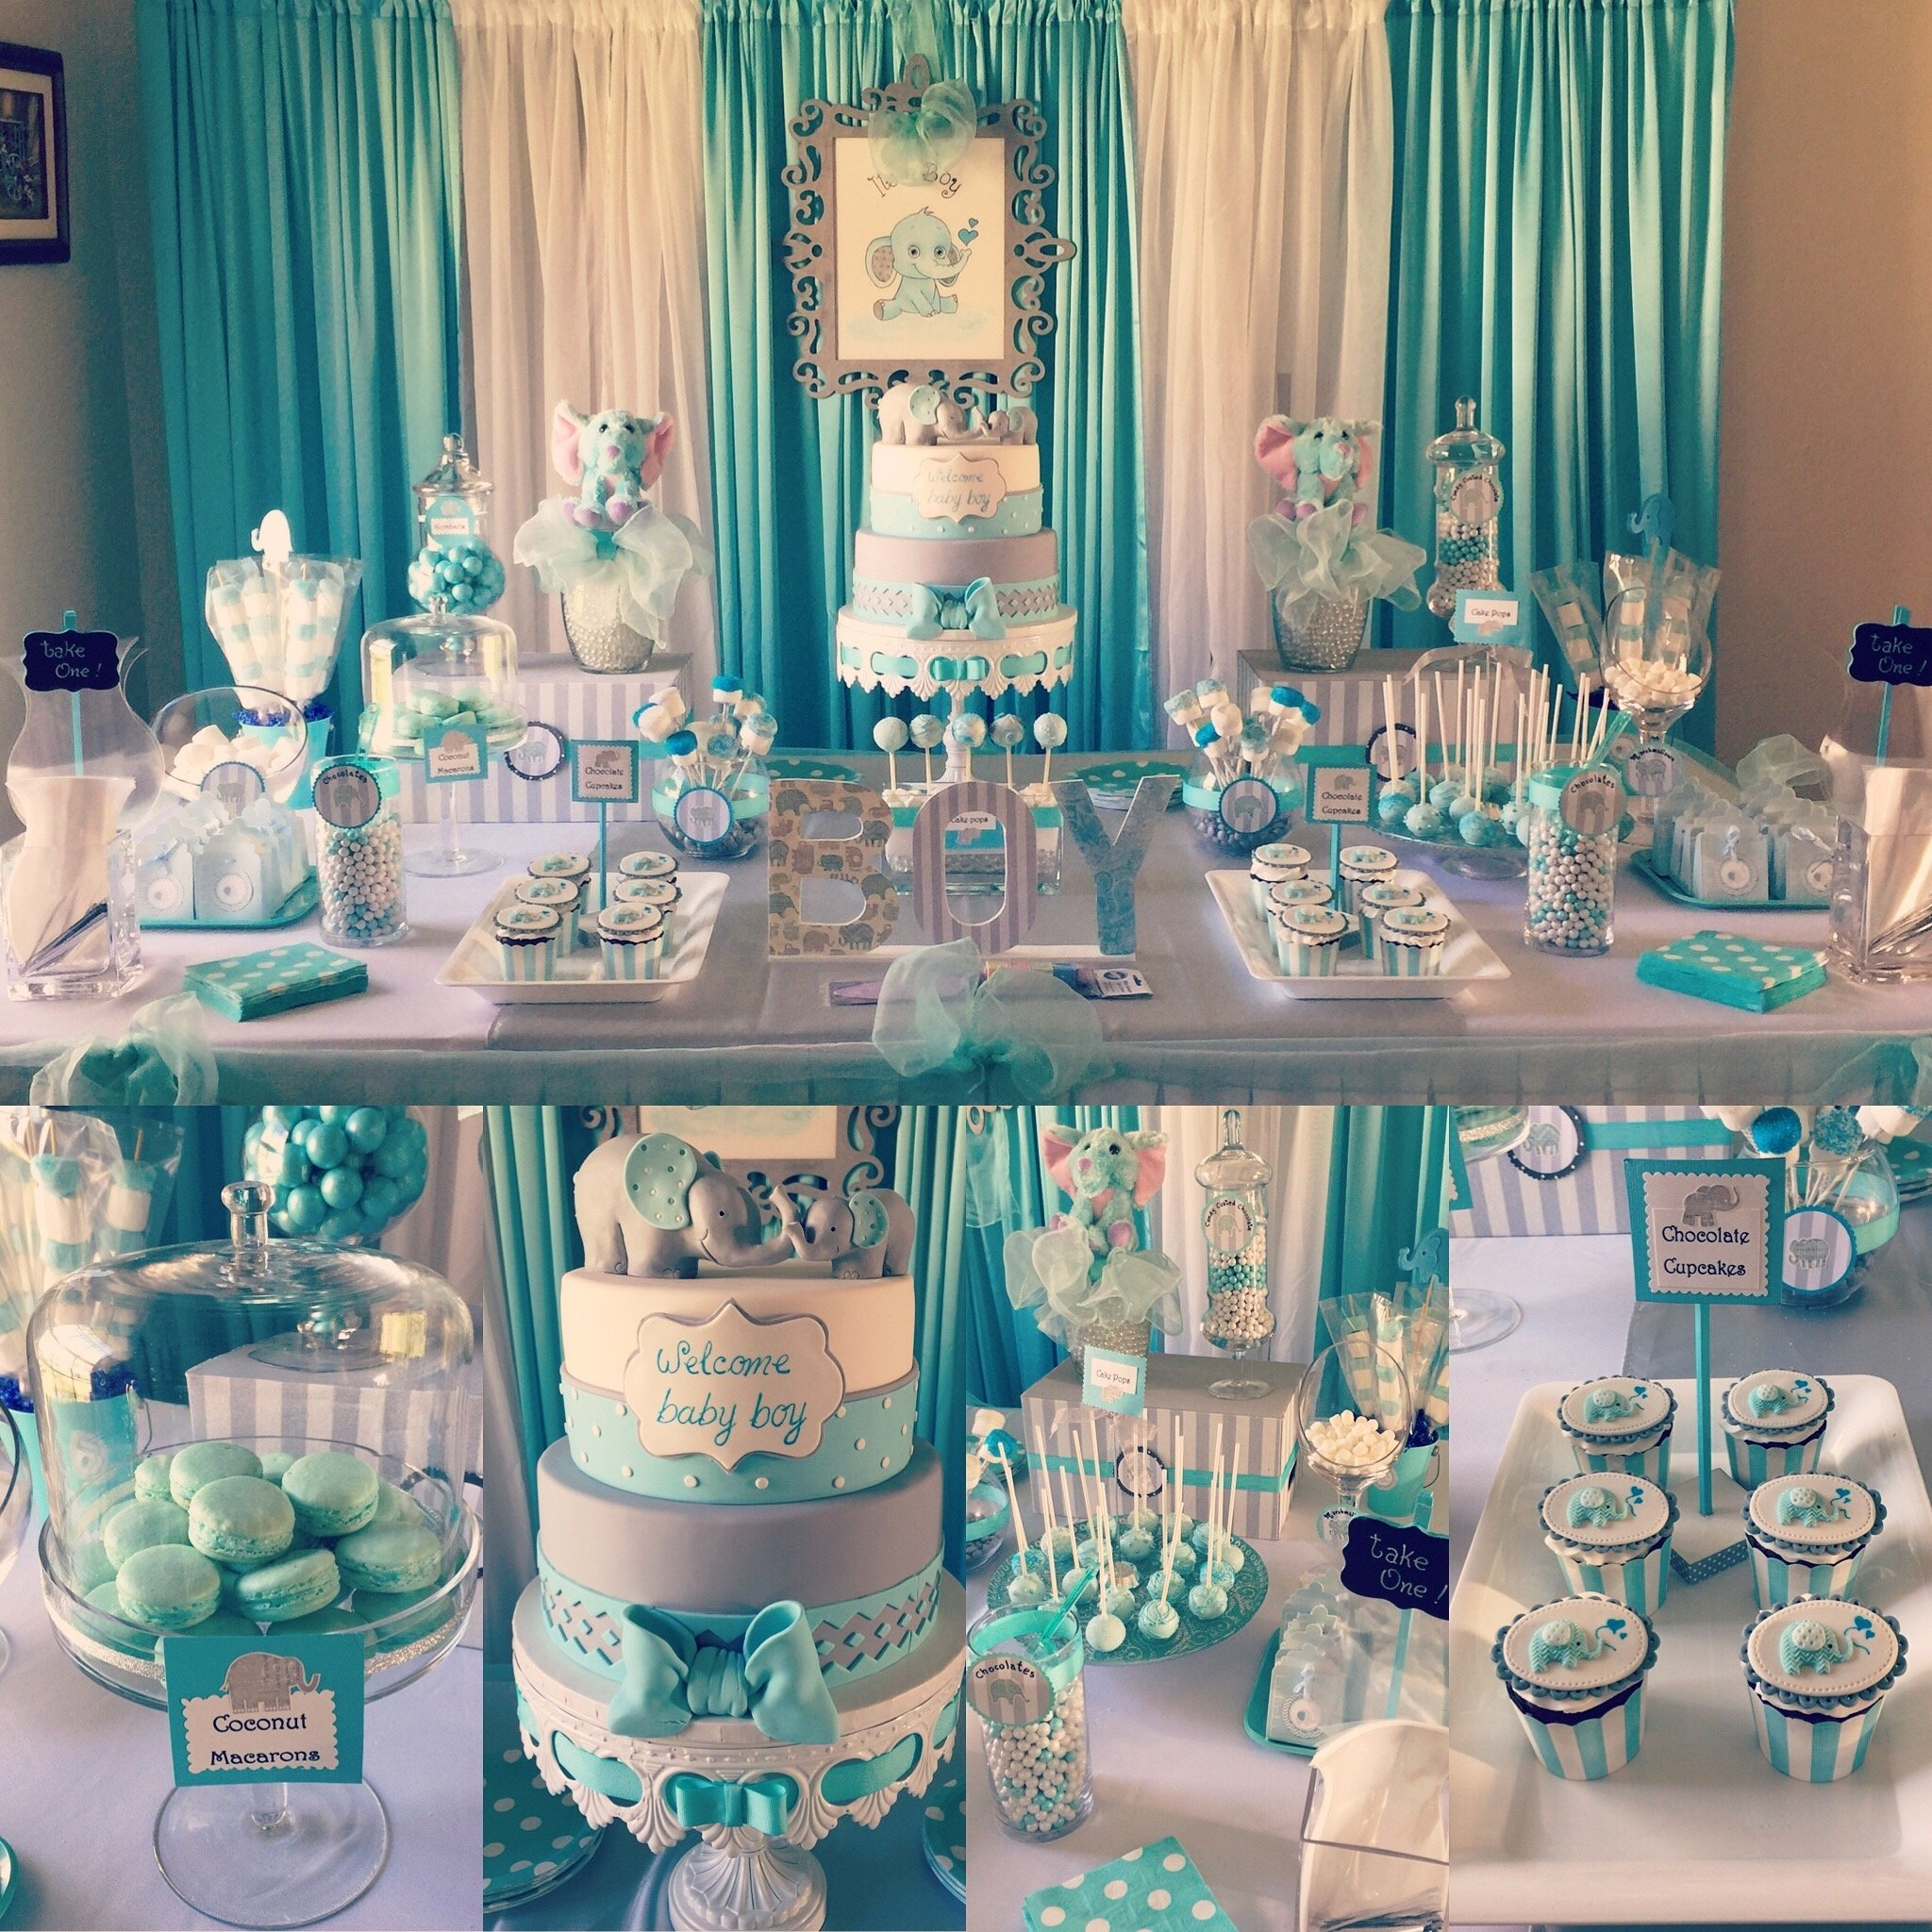 10 Ideal Ideas For A Baby Boy Shower fresh ideas baby boy shower decorations lovely elephant theme party 1 2021